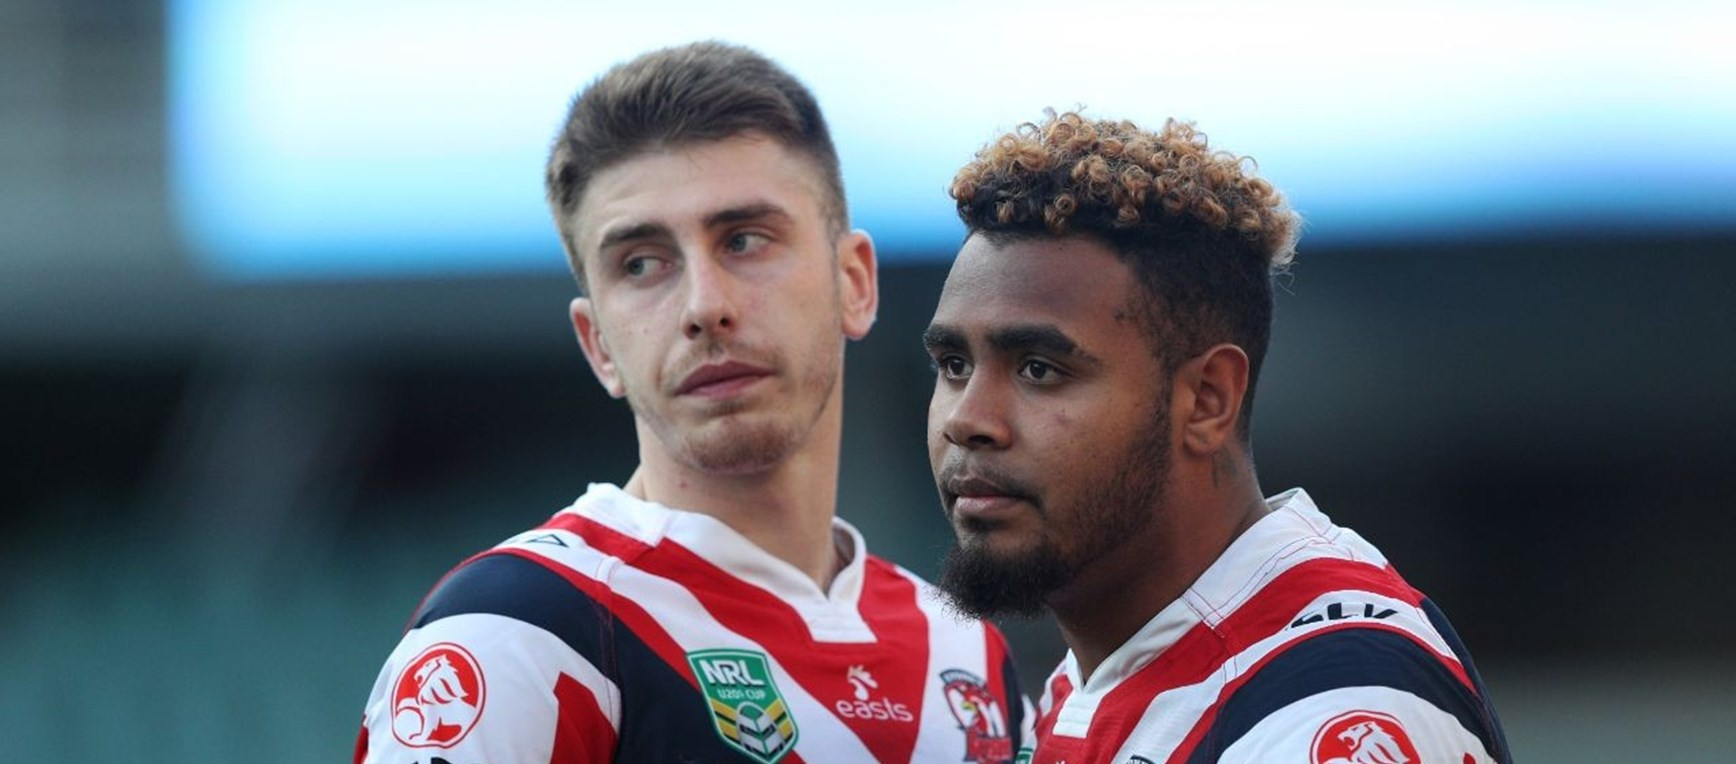 Gallery | NYC Preliminary Final